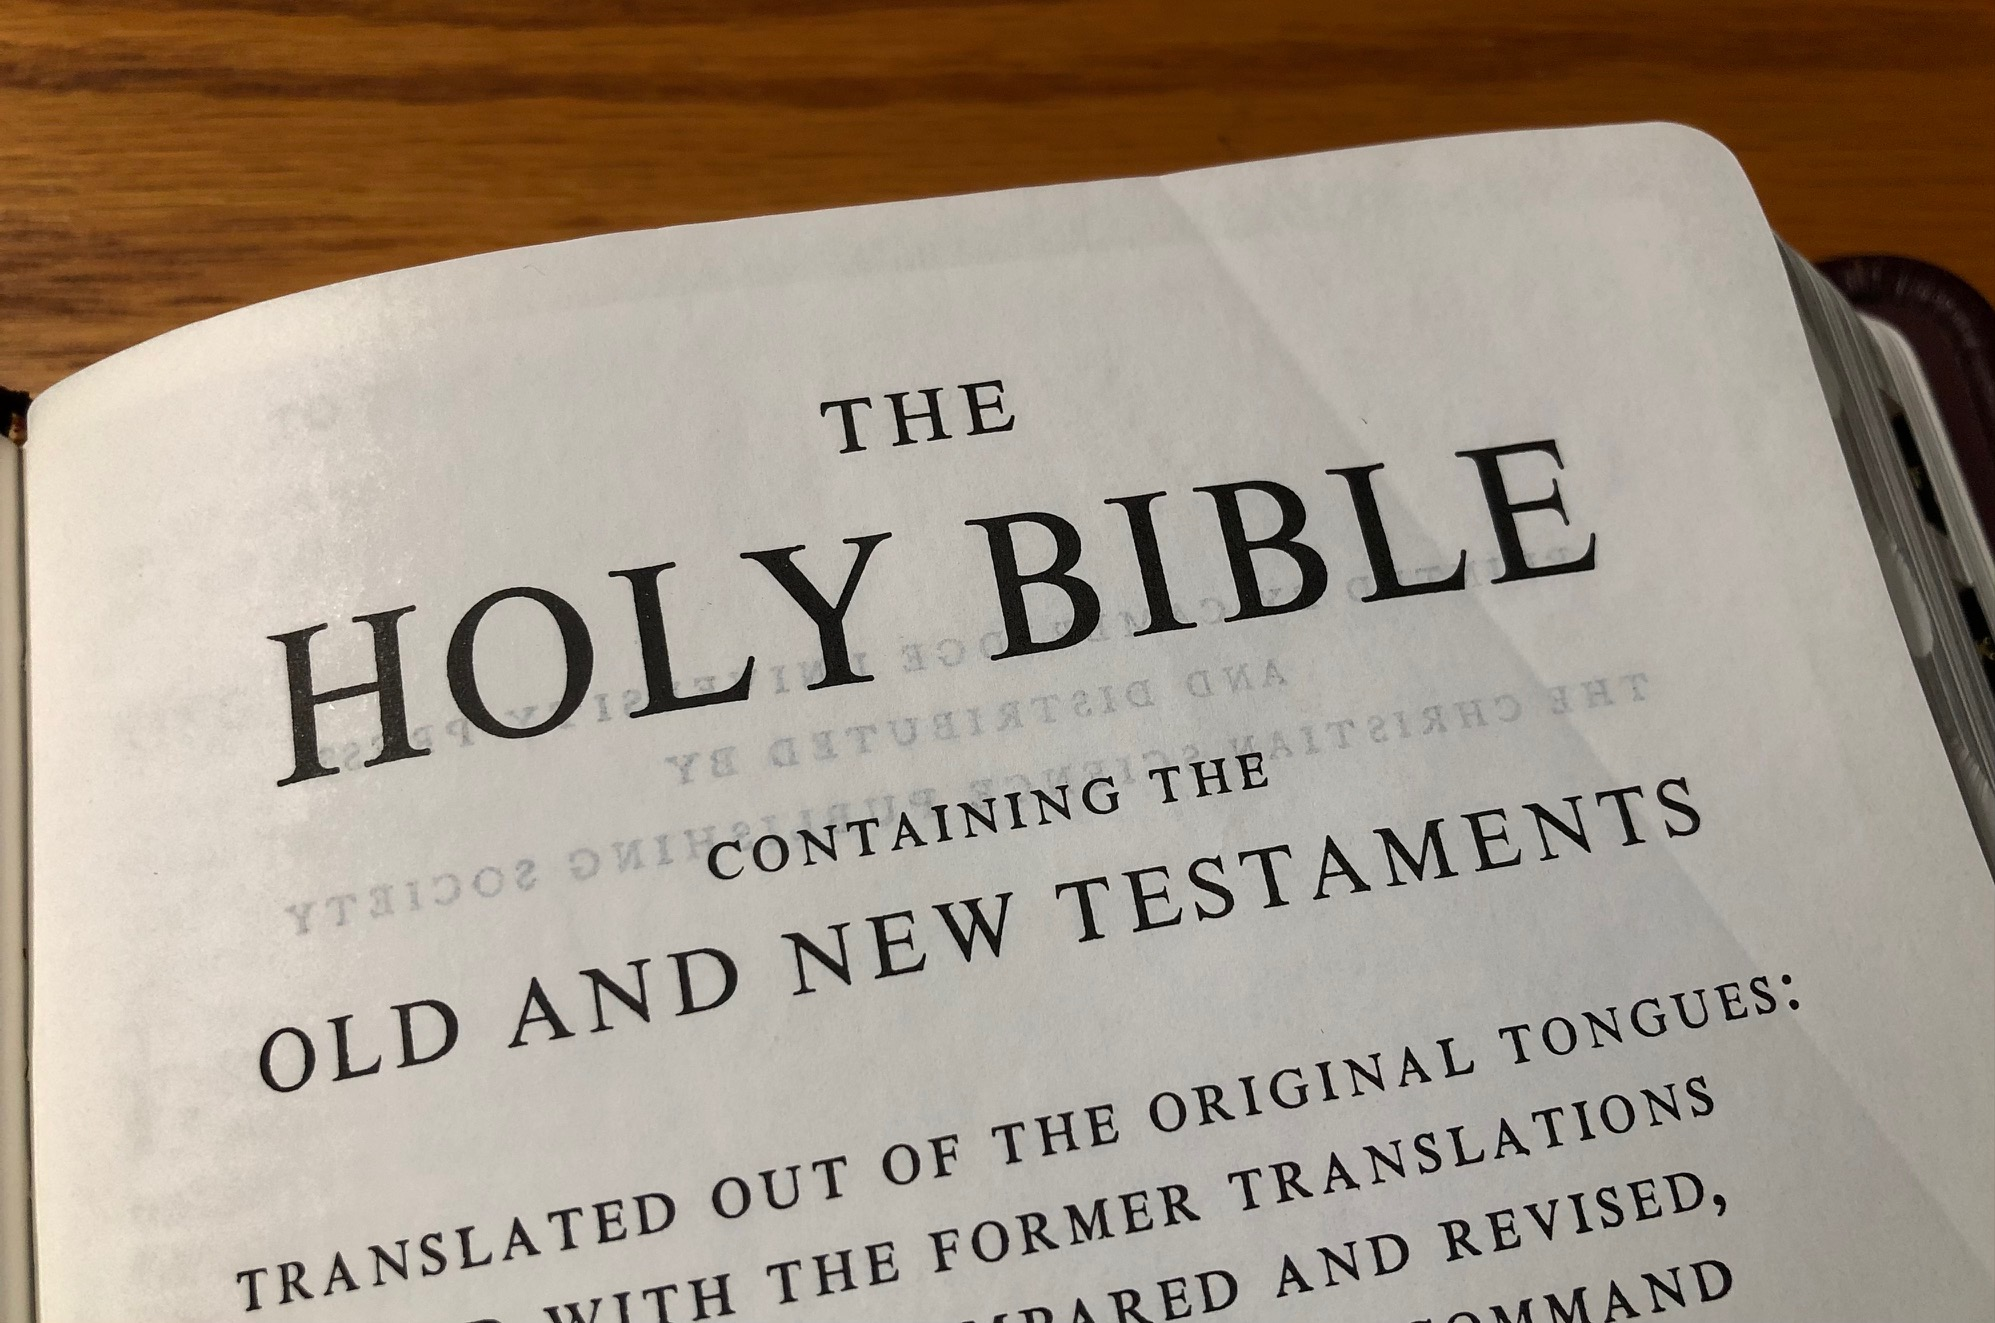 Holy Bible, who is your favorite Bible character